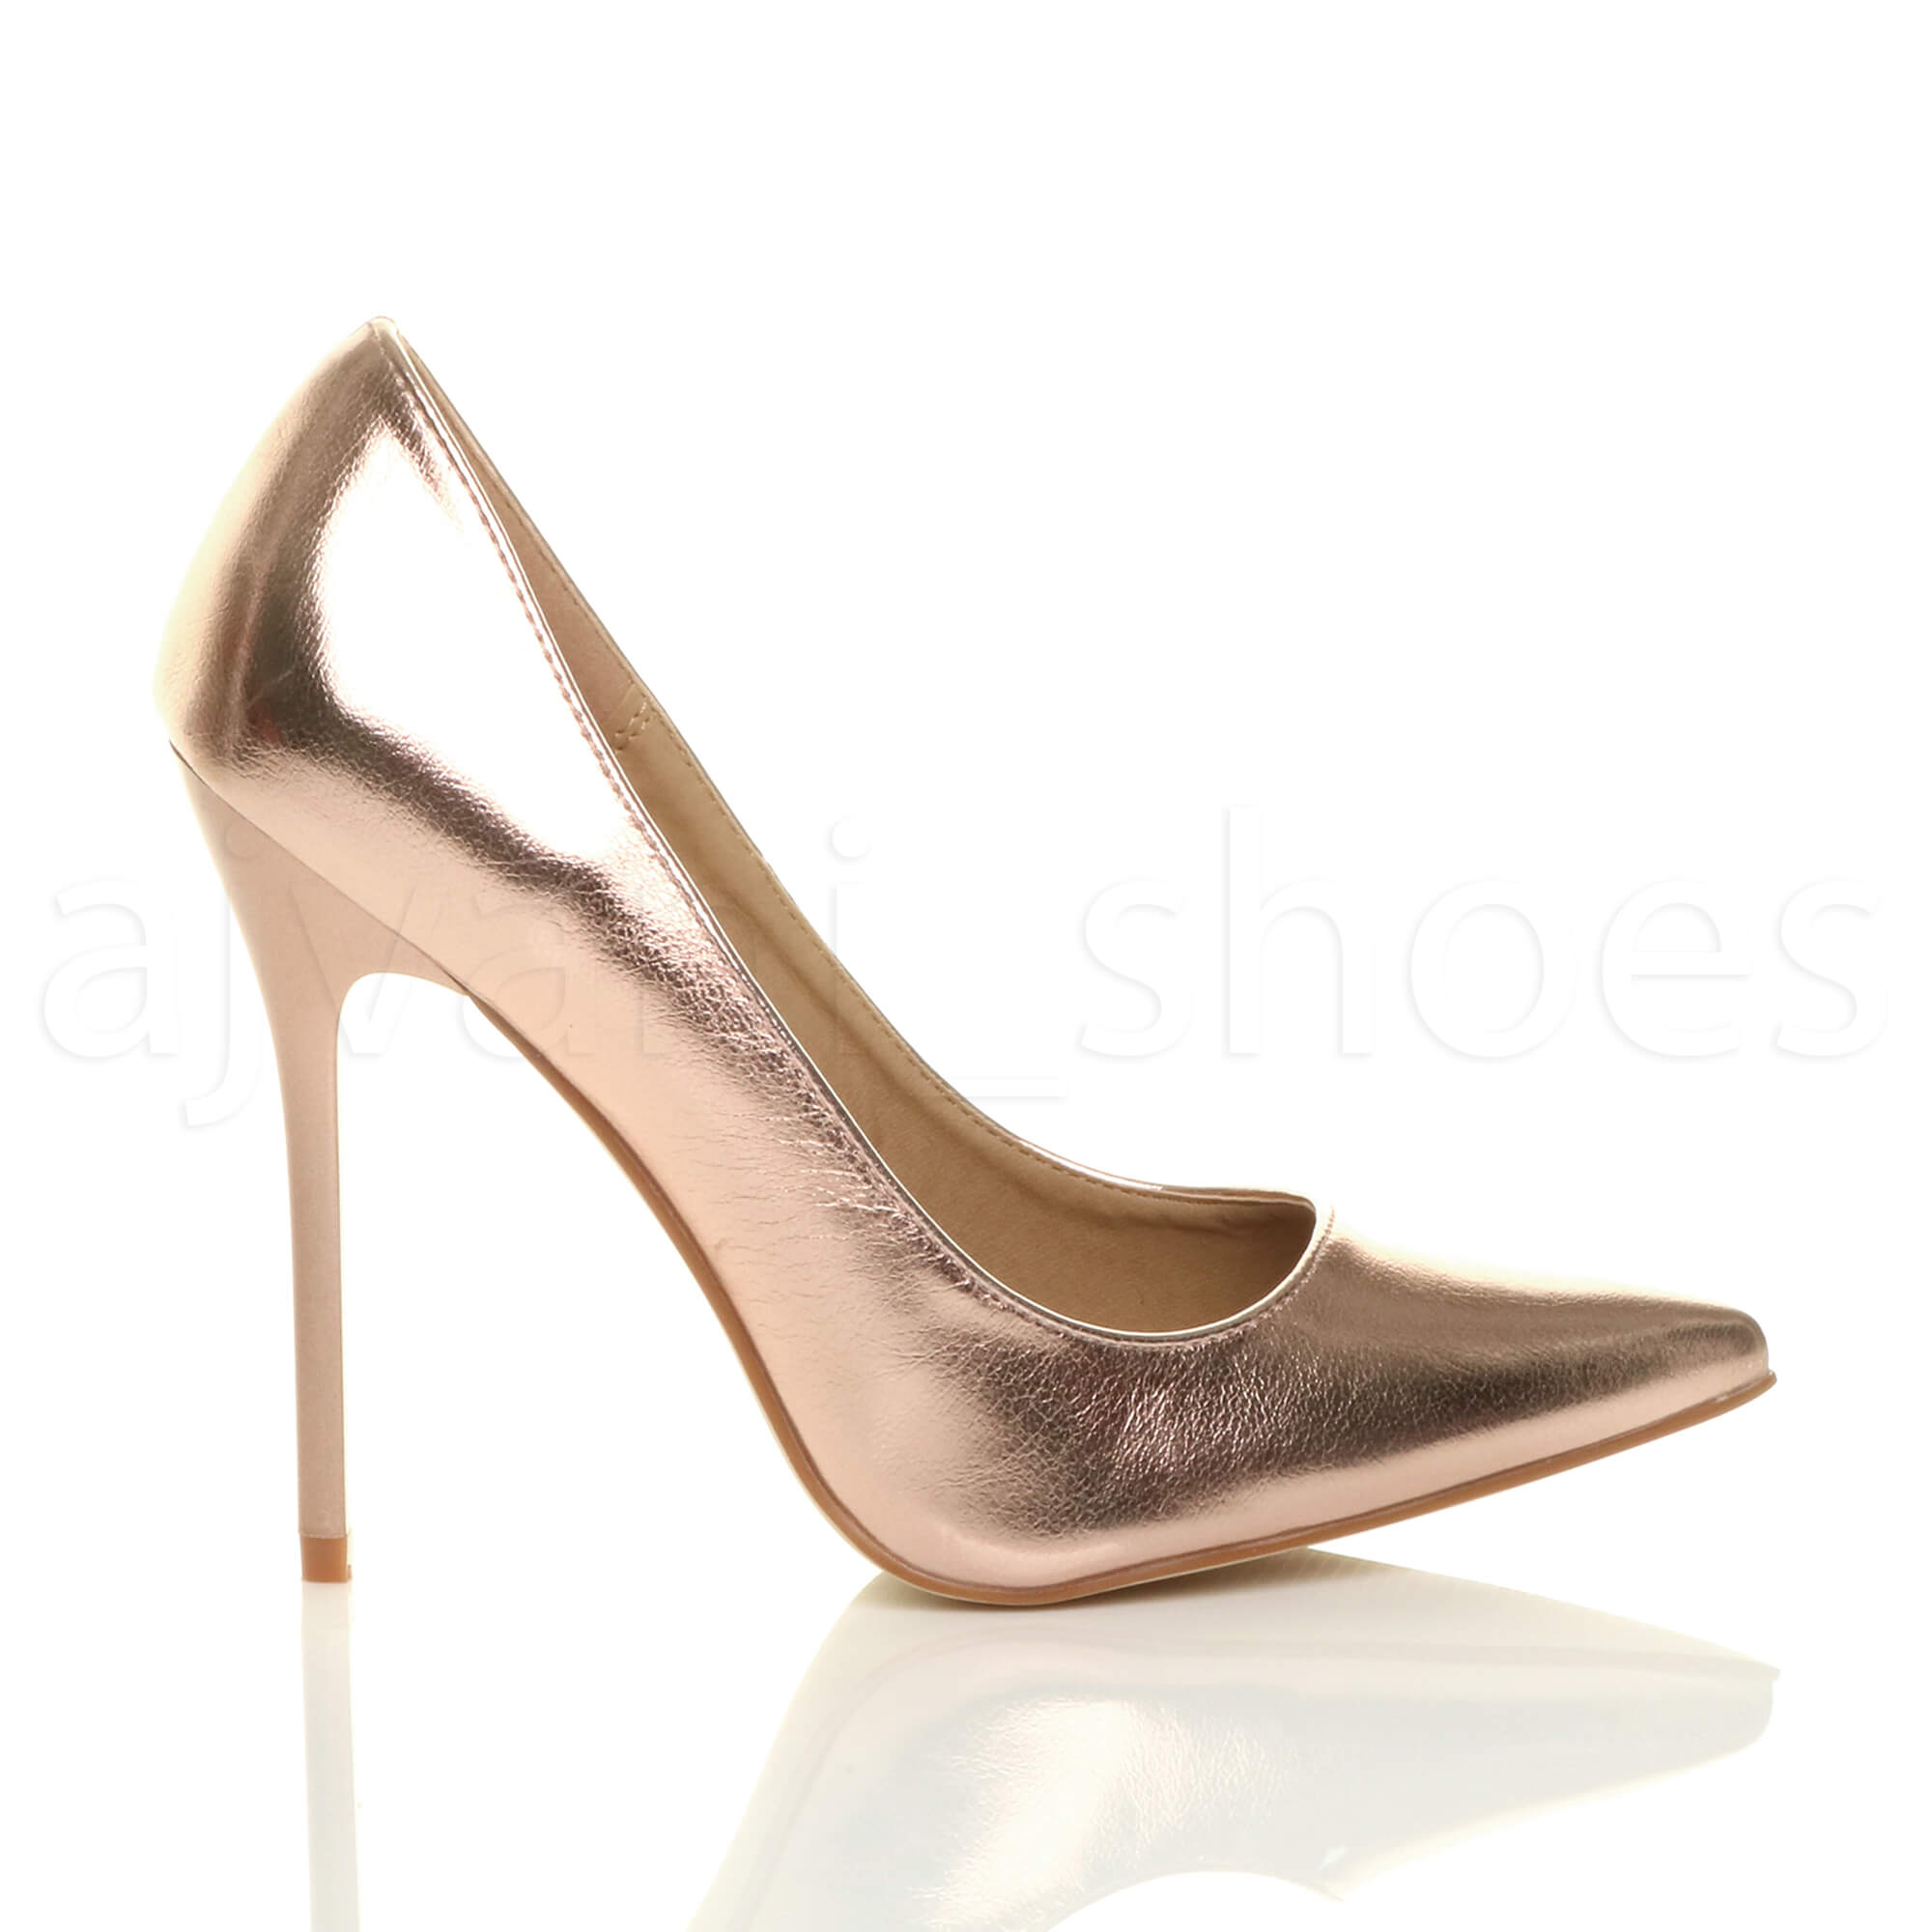 WOMENS-LADIES-HIGH-HEEL-POINTED-CONTRAST-COURT-SMART-PARTY-WORK-SHOES-PUMPS-SIZE thumbnail 177